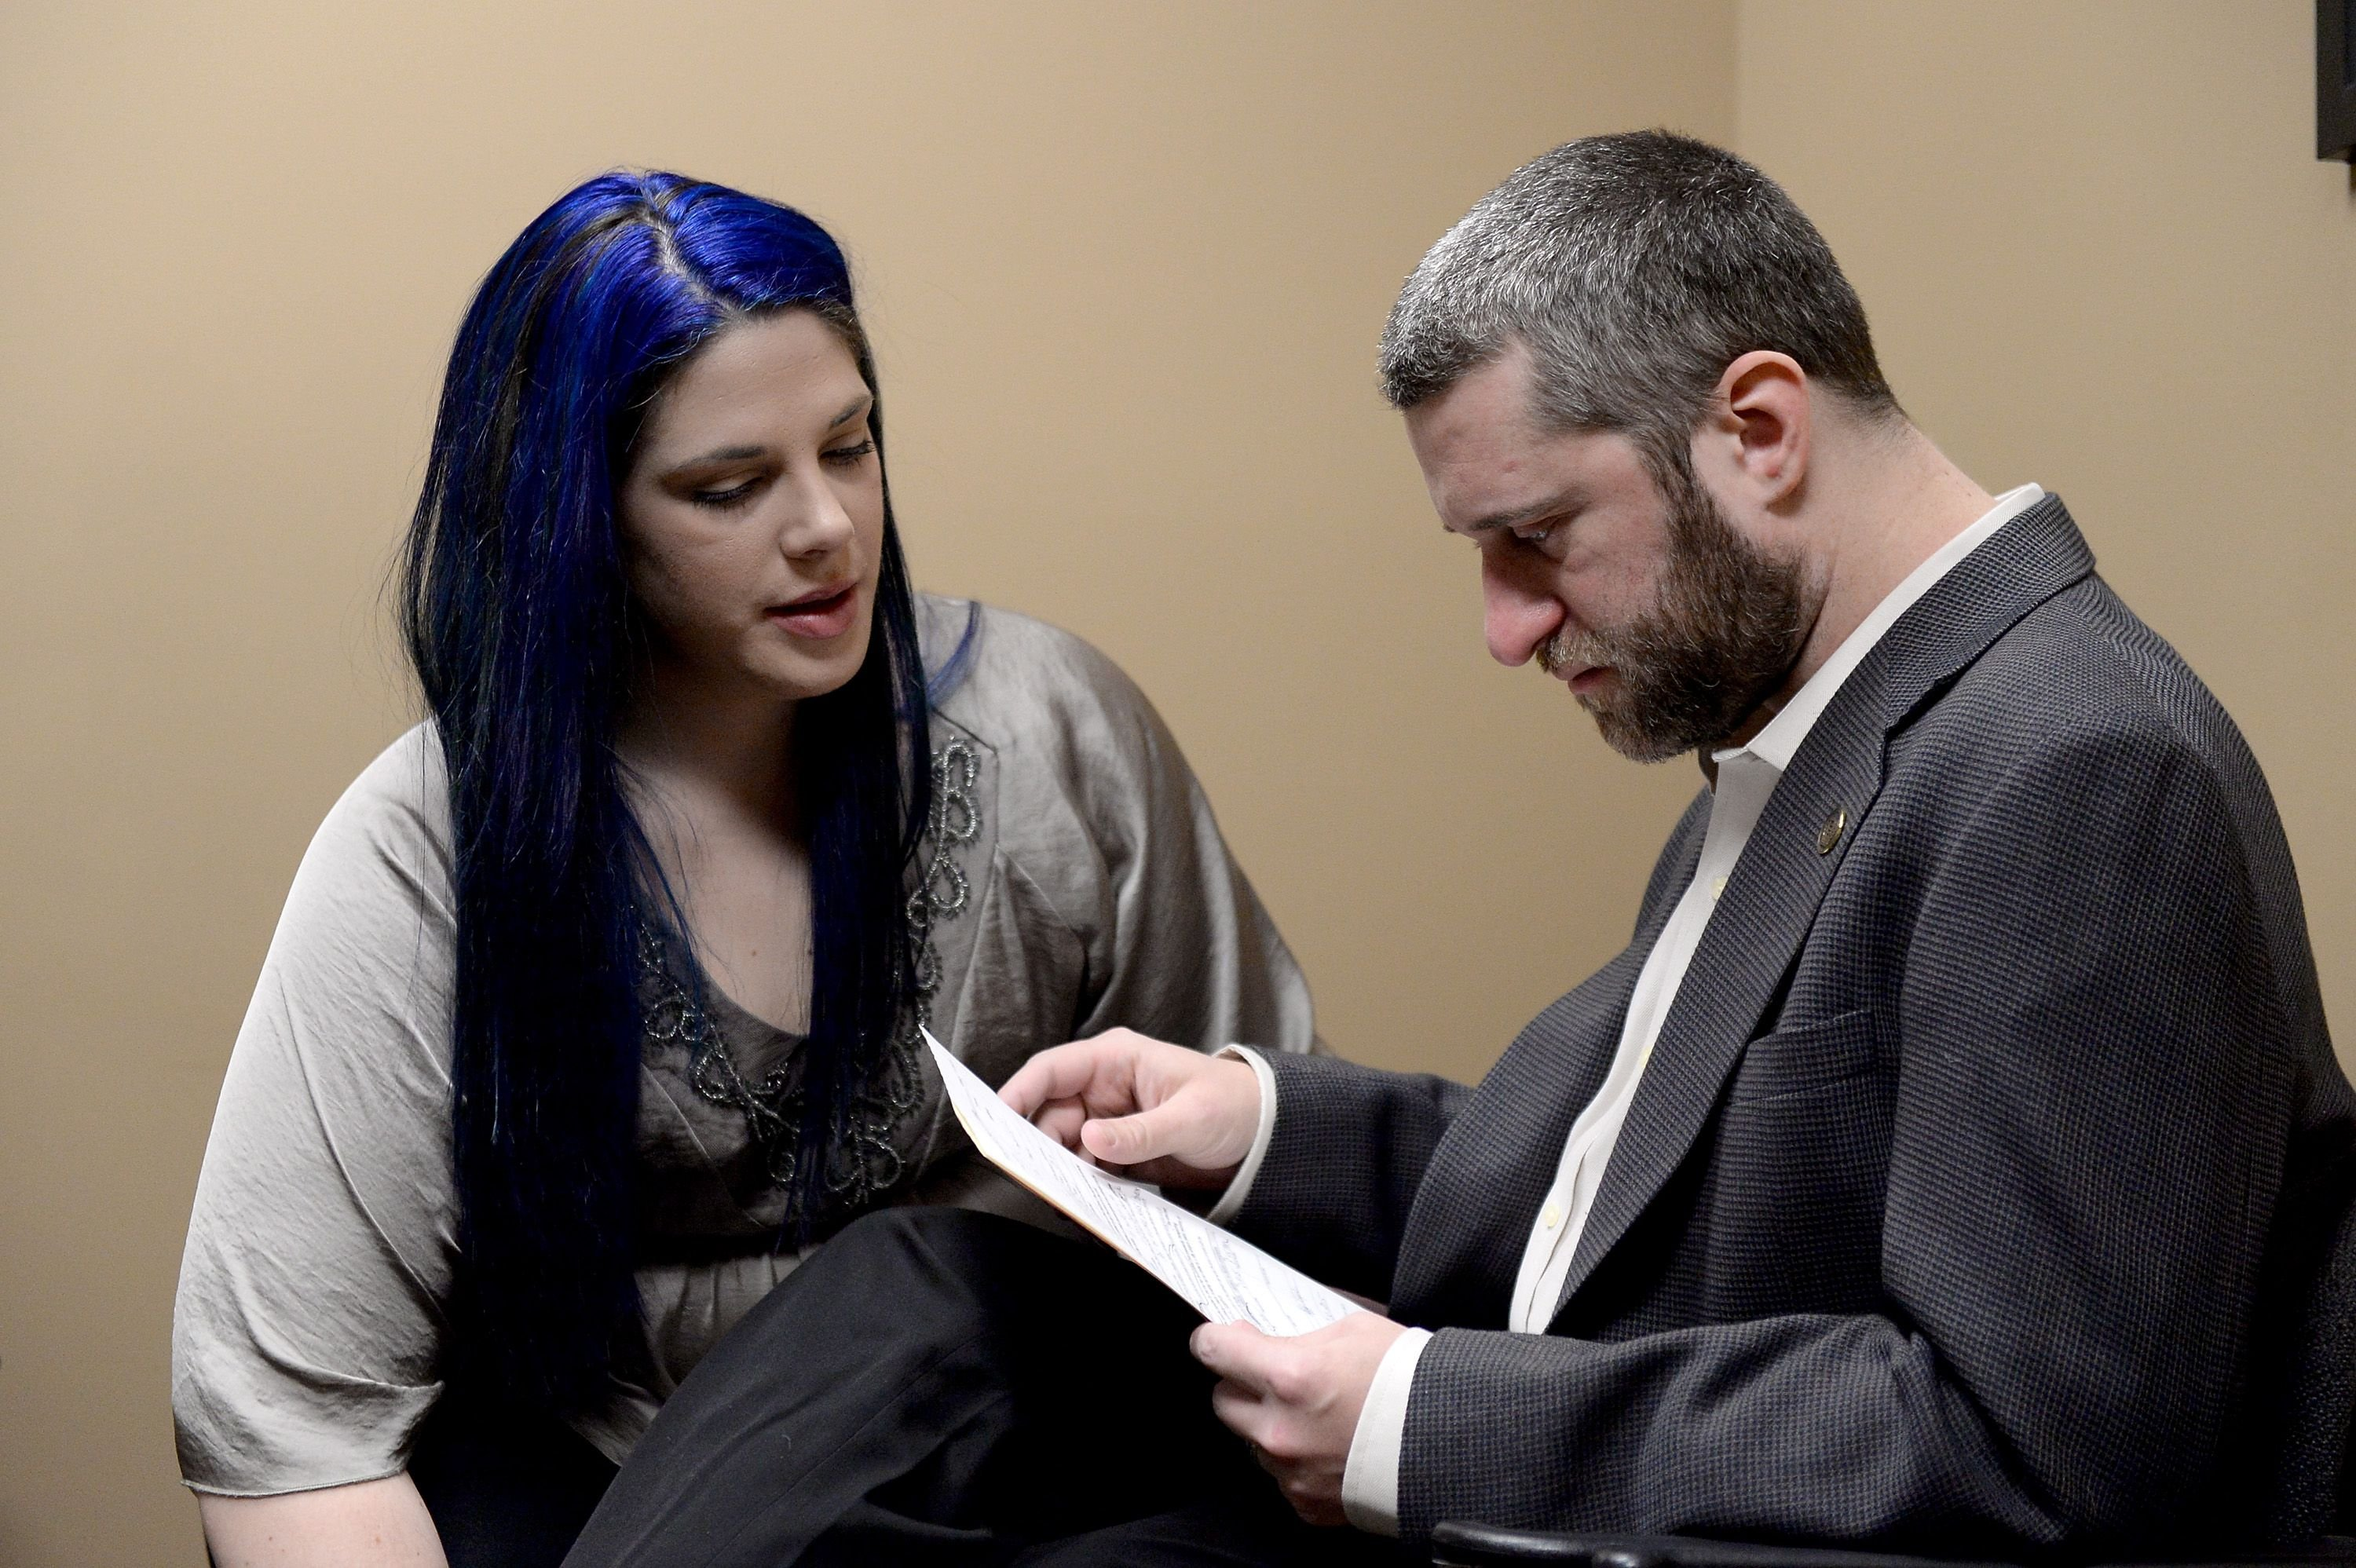 Dustin Diamond and Amanda Schutz at their arraignment at Ozaukee County Courthouse in January 2015 in Port Washington, Wisconsin   Source: Getty Images